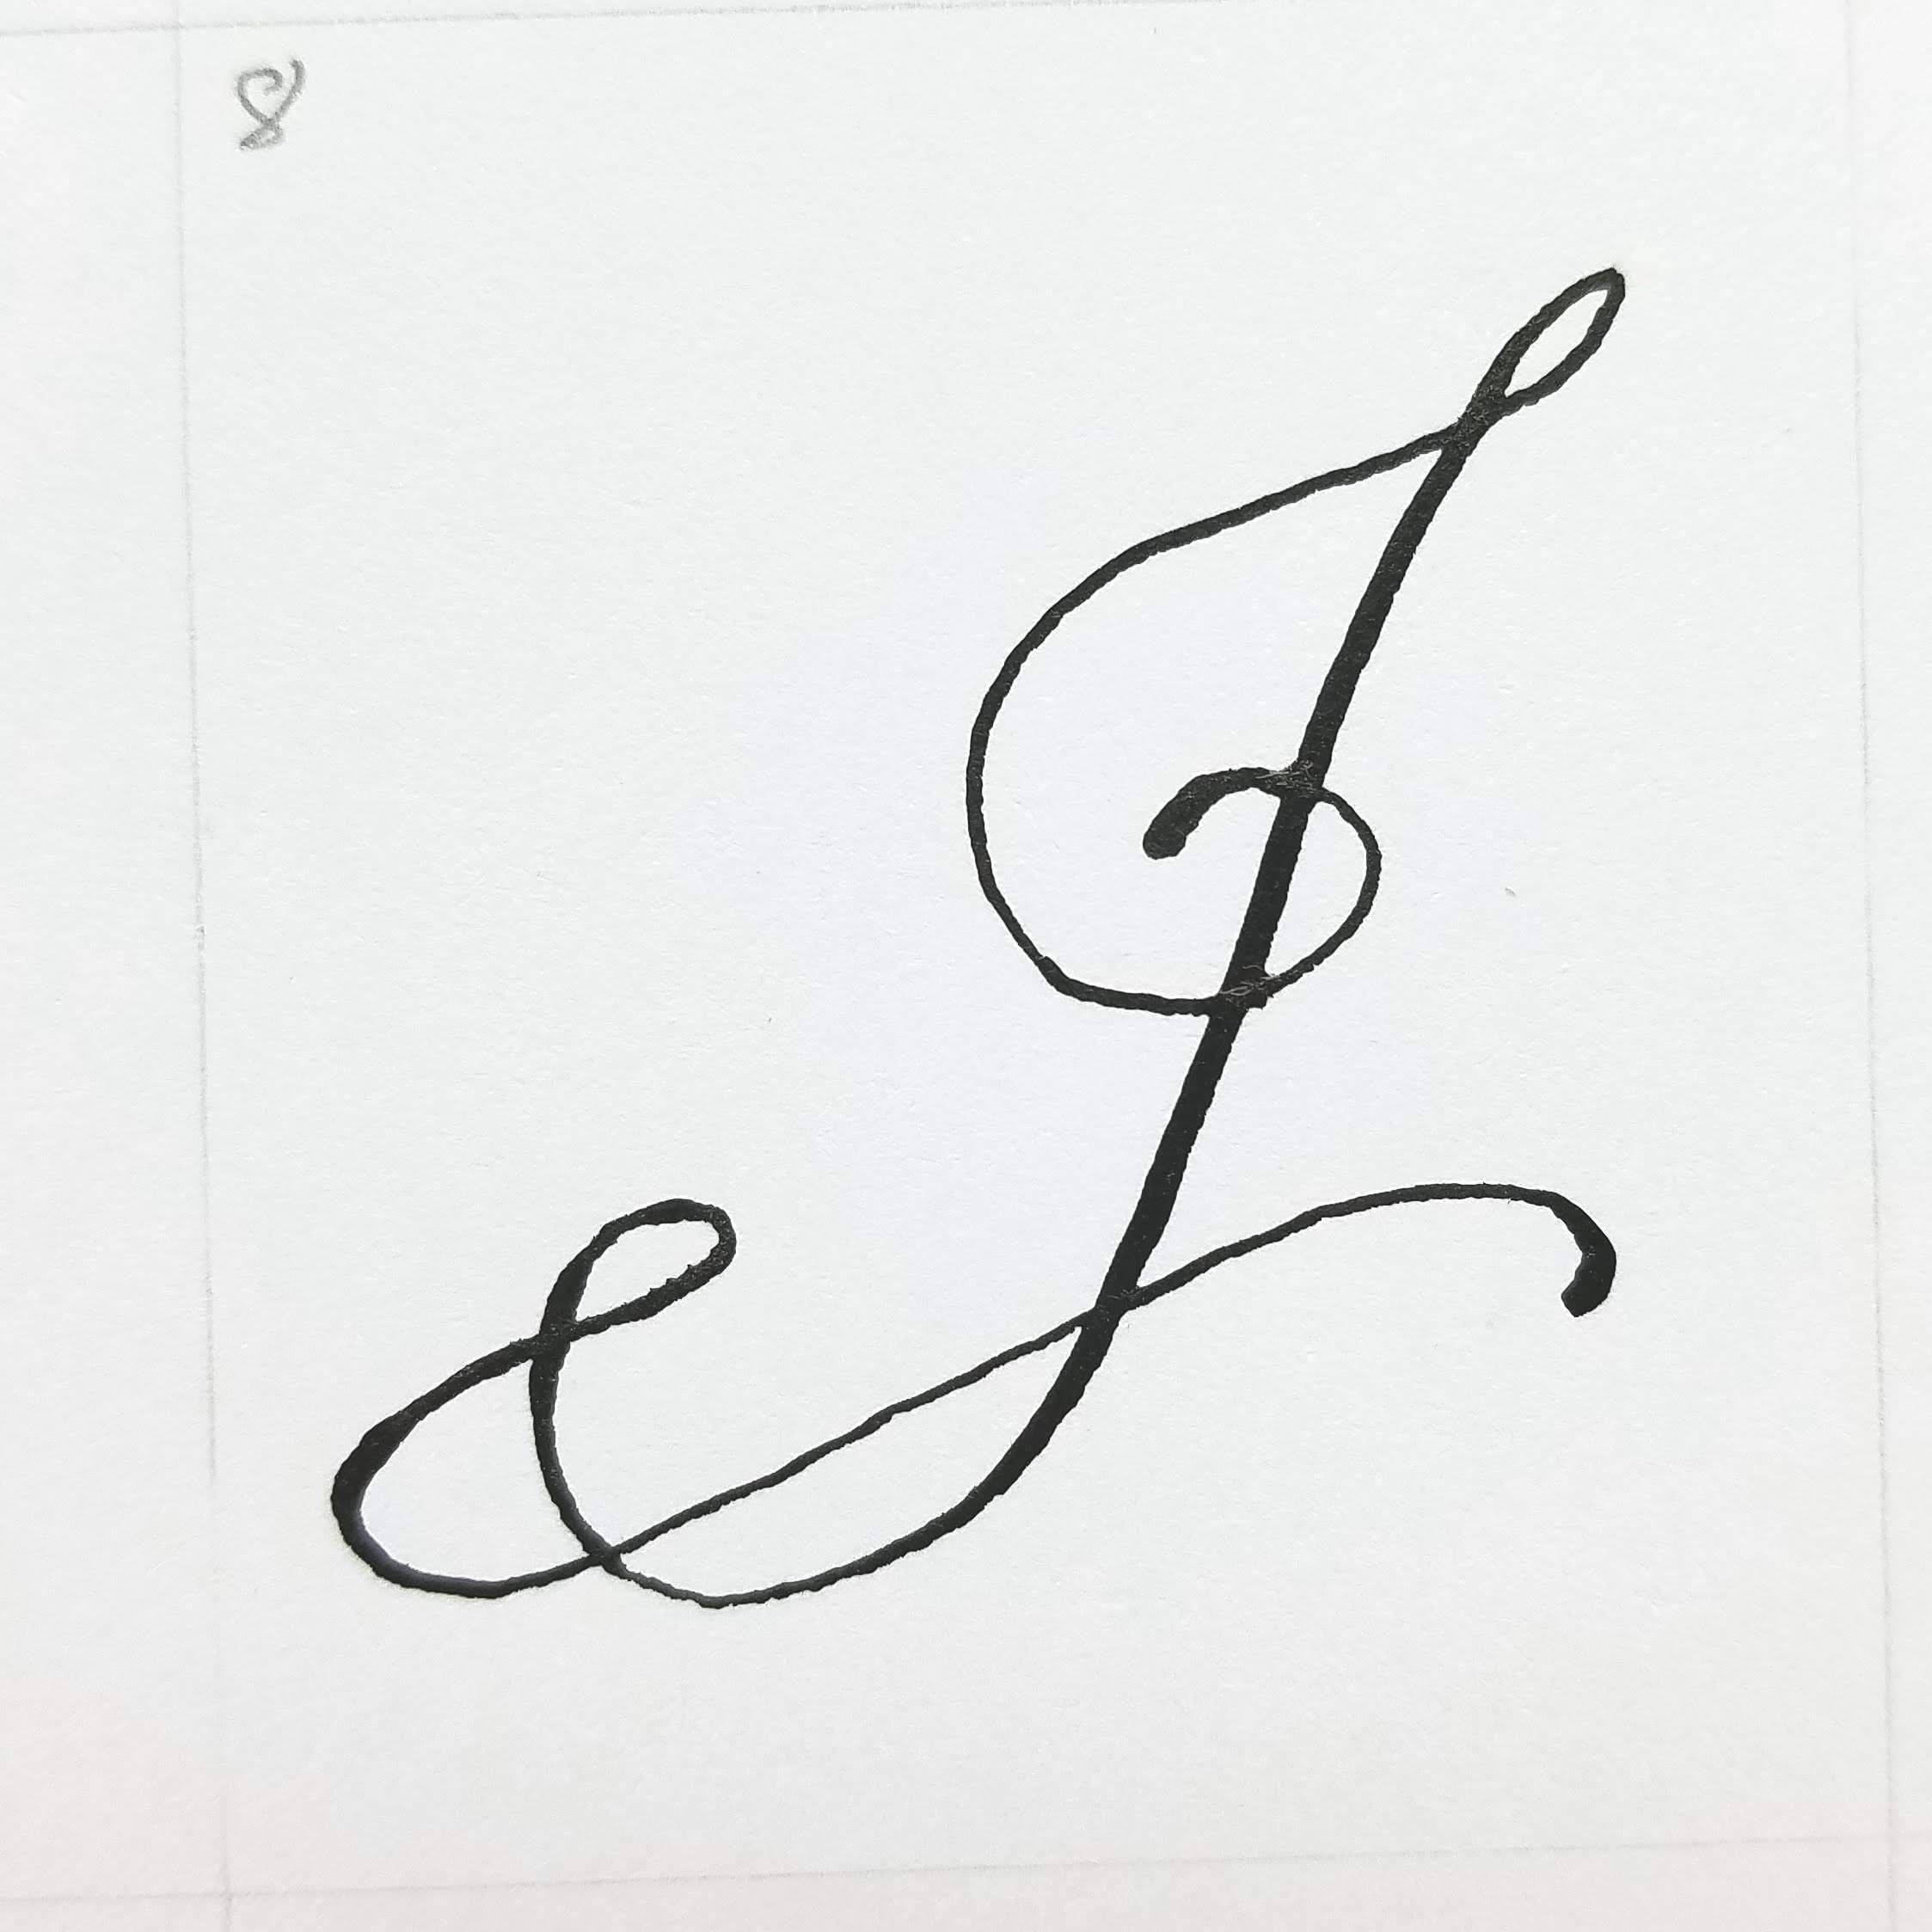 Letter J And Jellyfish With Images J Calligraphy Letter J